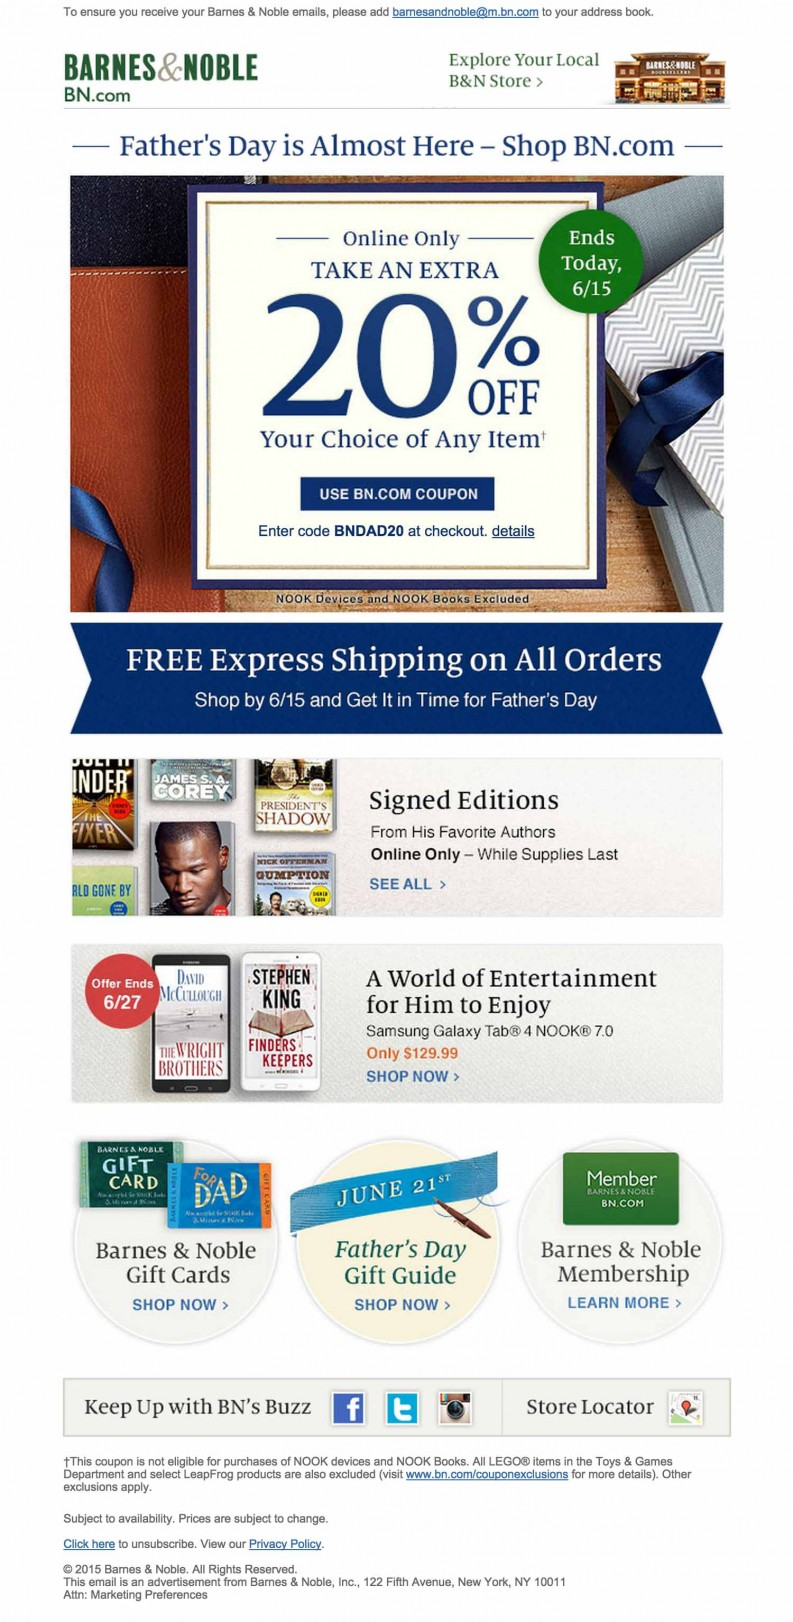 Barnes & Noble Fathers Day email